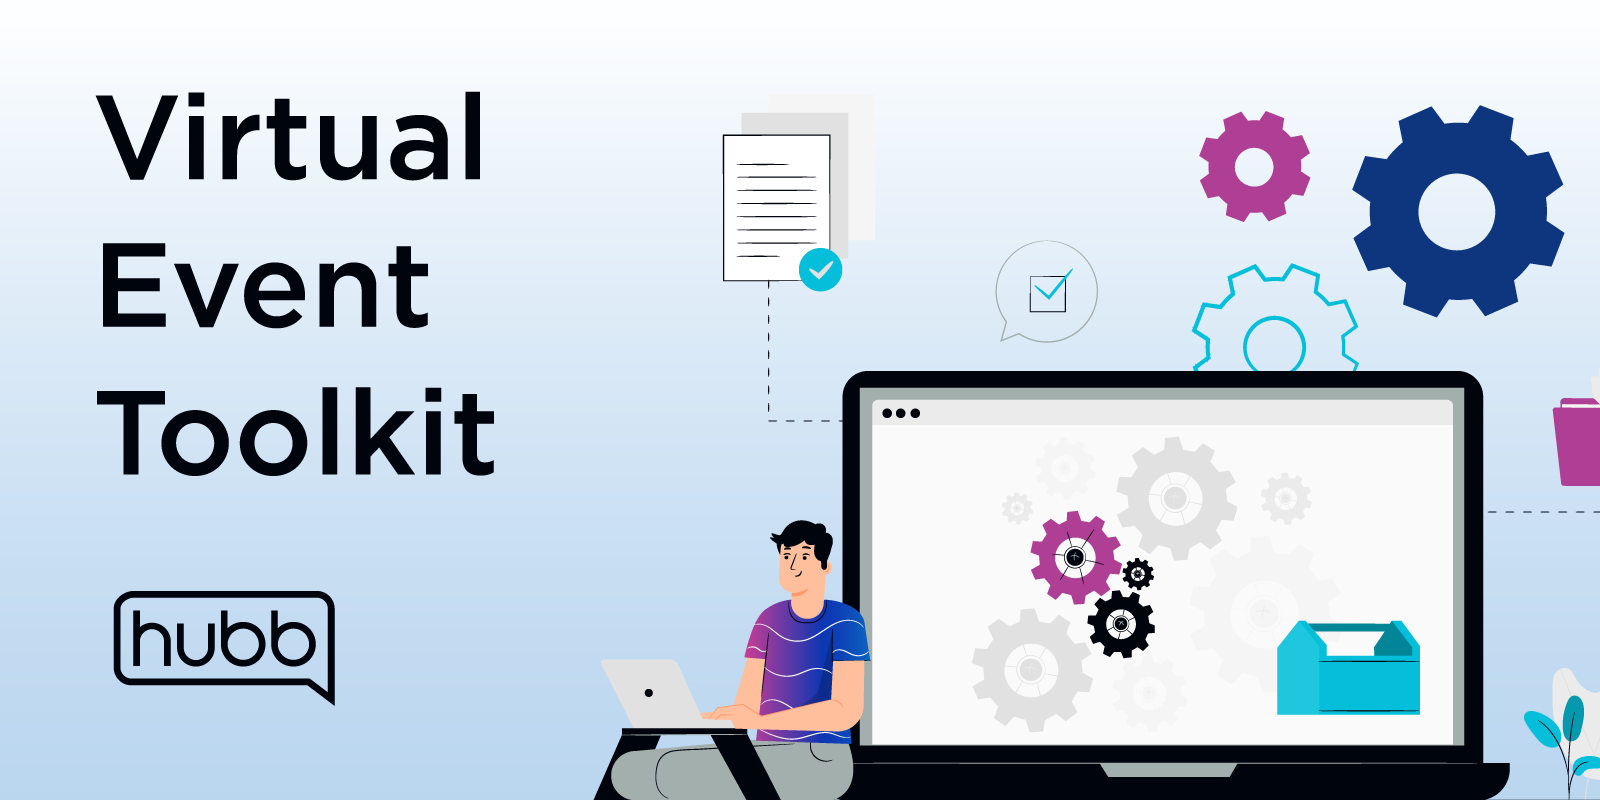 Your Virtual Event Toolkit